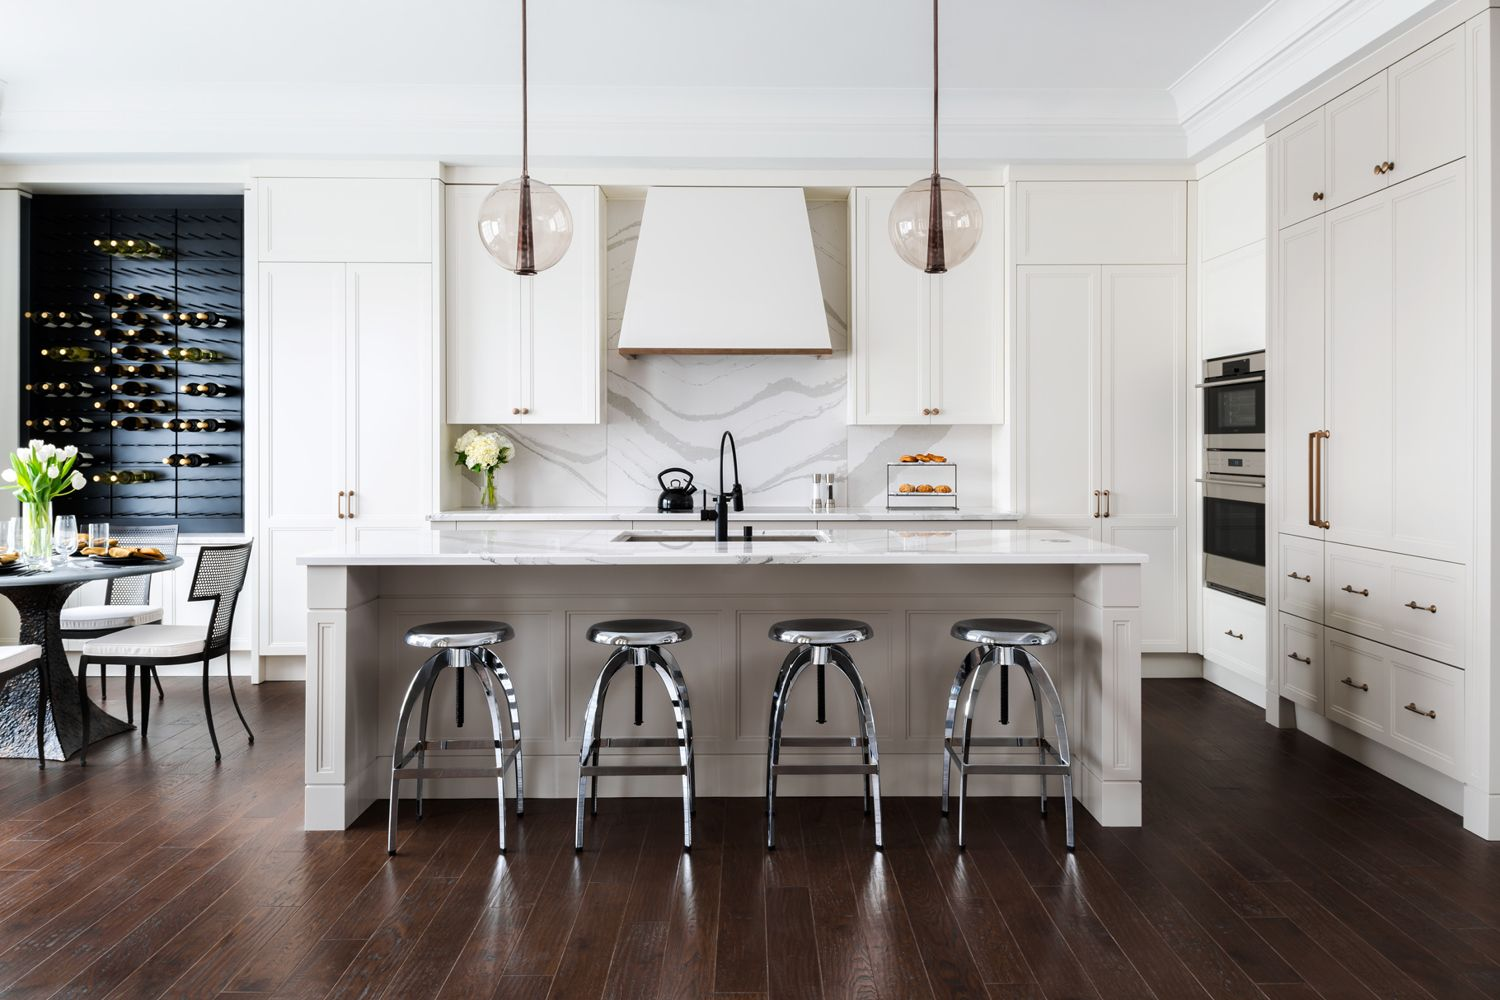 5 Traits of a Well-Designed Kitchen - Tips from Scott McGillivray ...